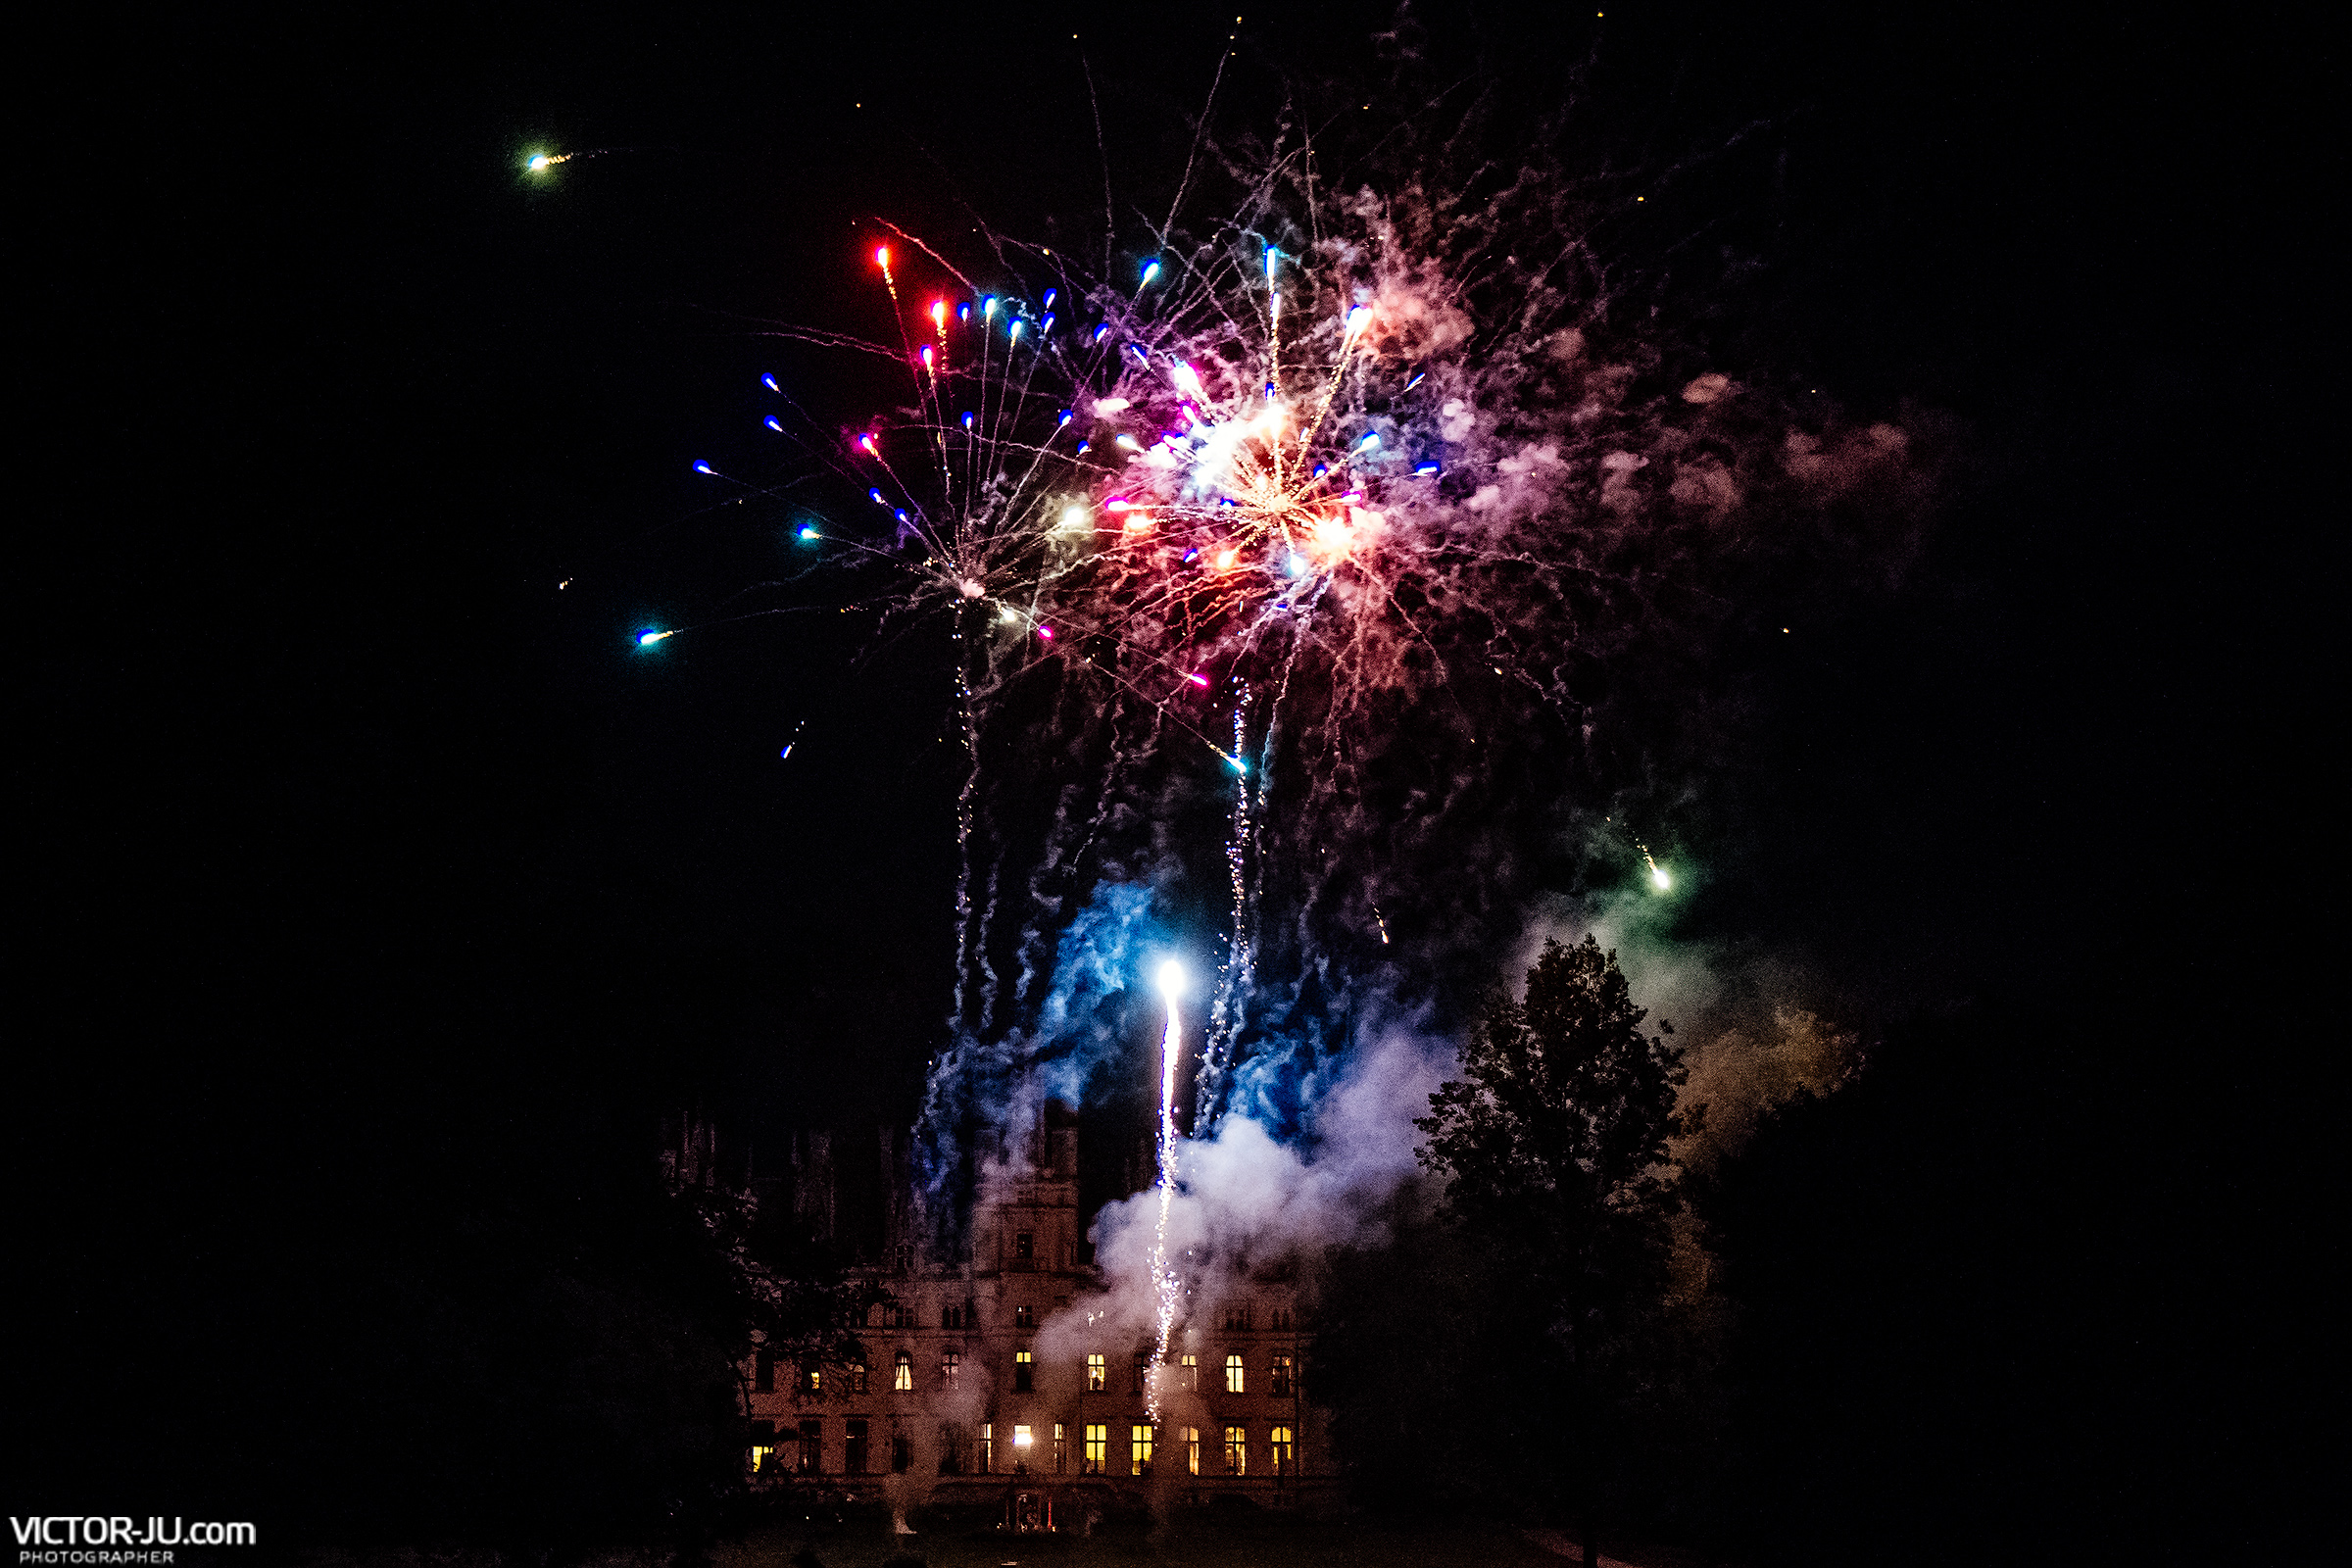 Celebratory wedding fireworks in the castle of Château de Challain